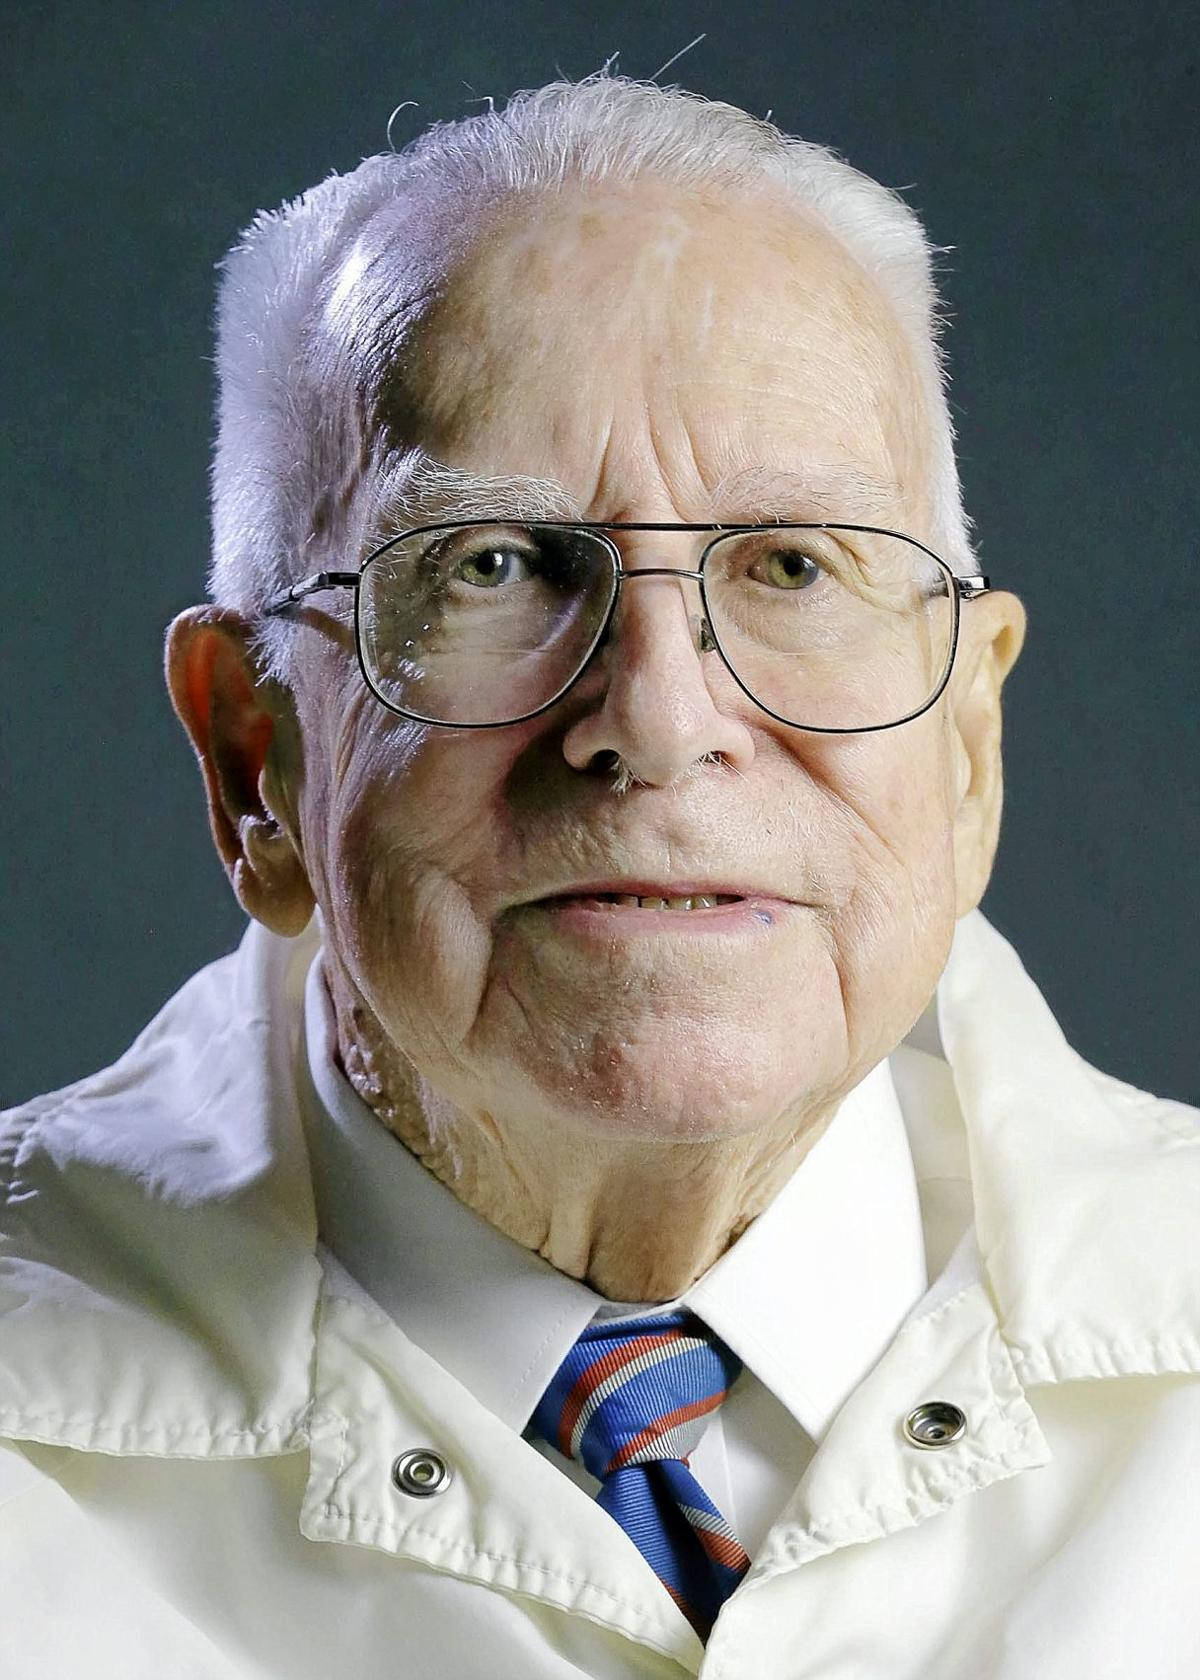 Jim Alspaugh, Tulsa World War II veteran and speaker, Purple